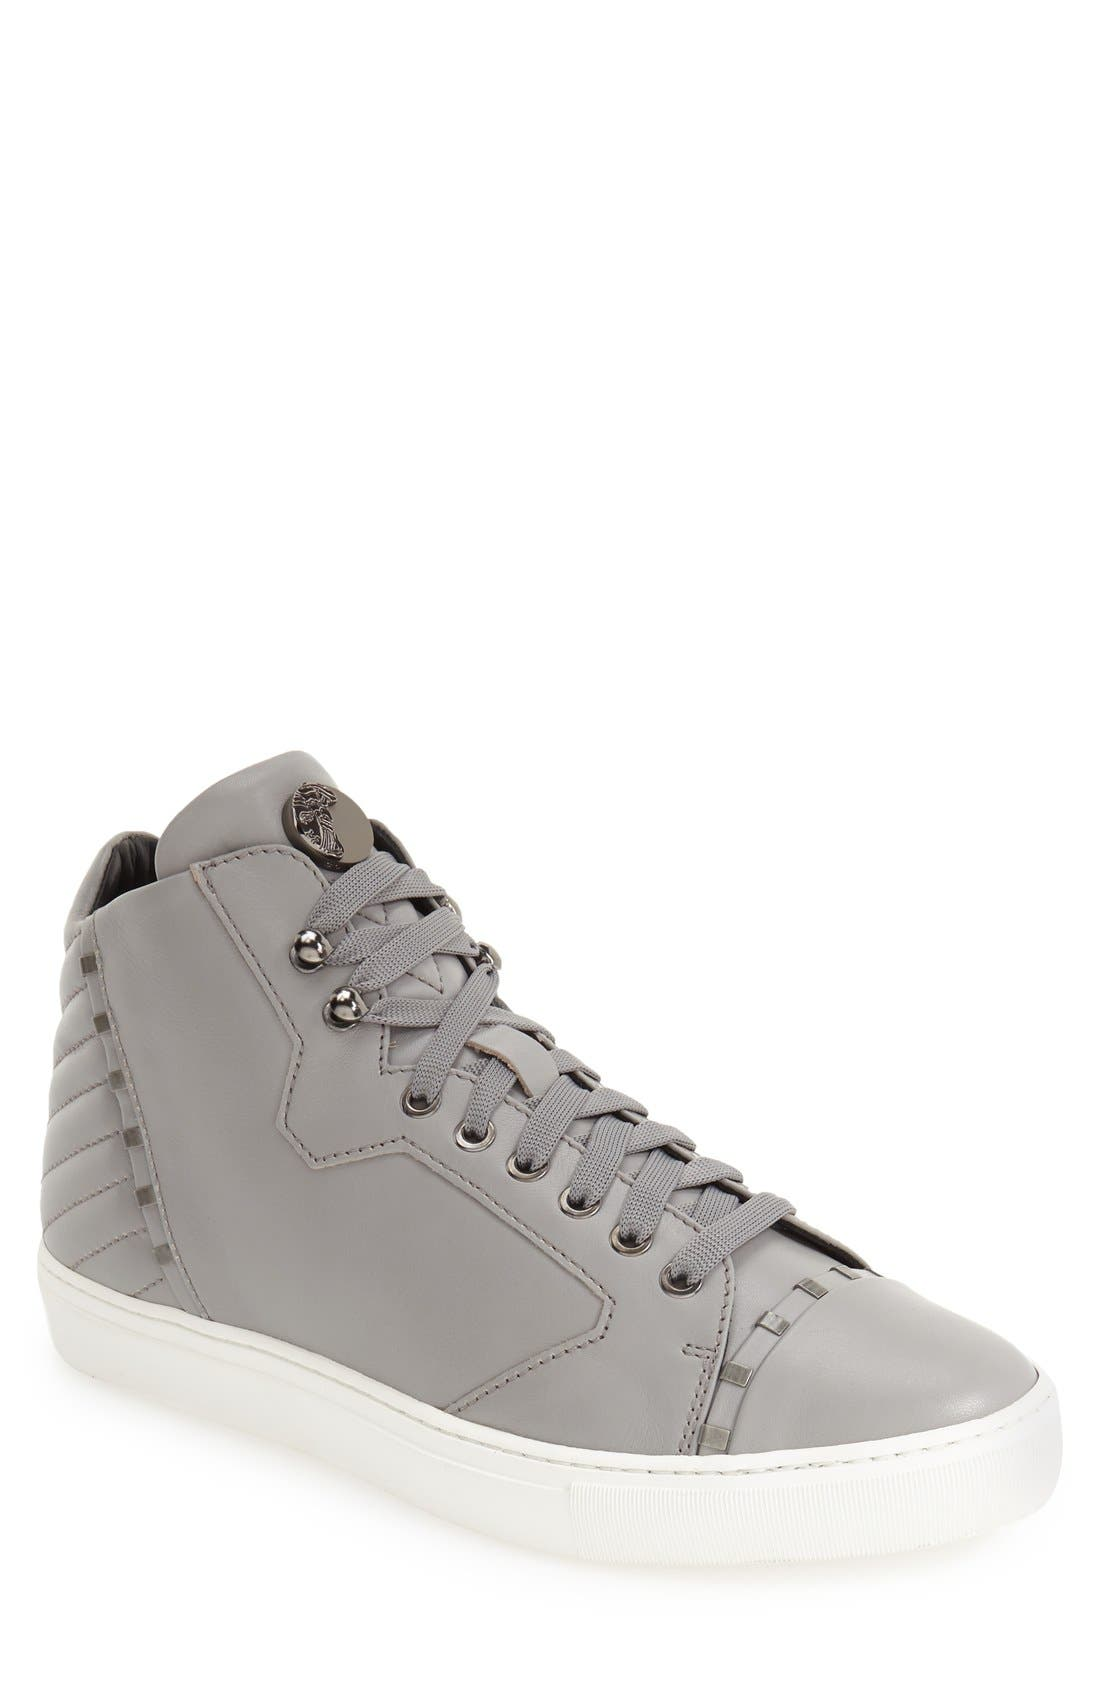 Main Image - Versace Collection Leather High Top Sneaker (Men)